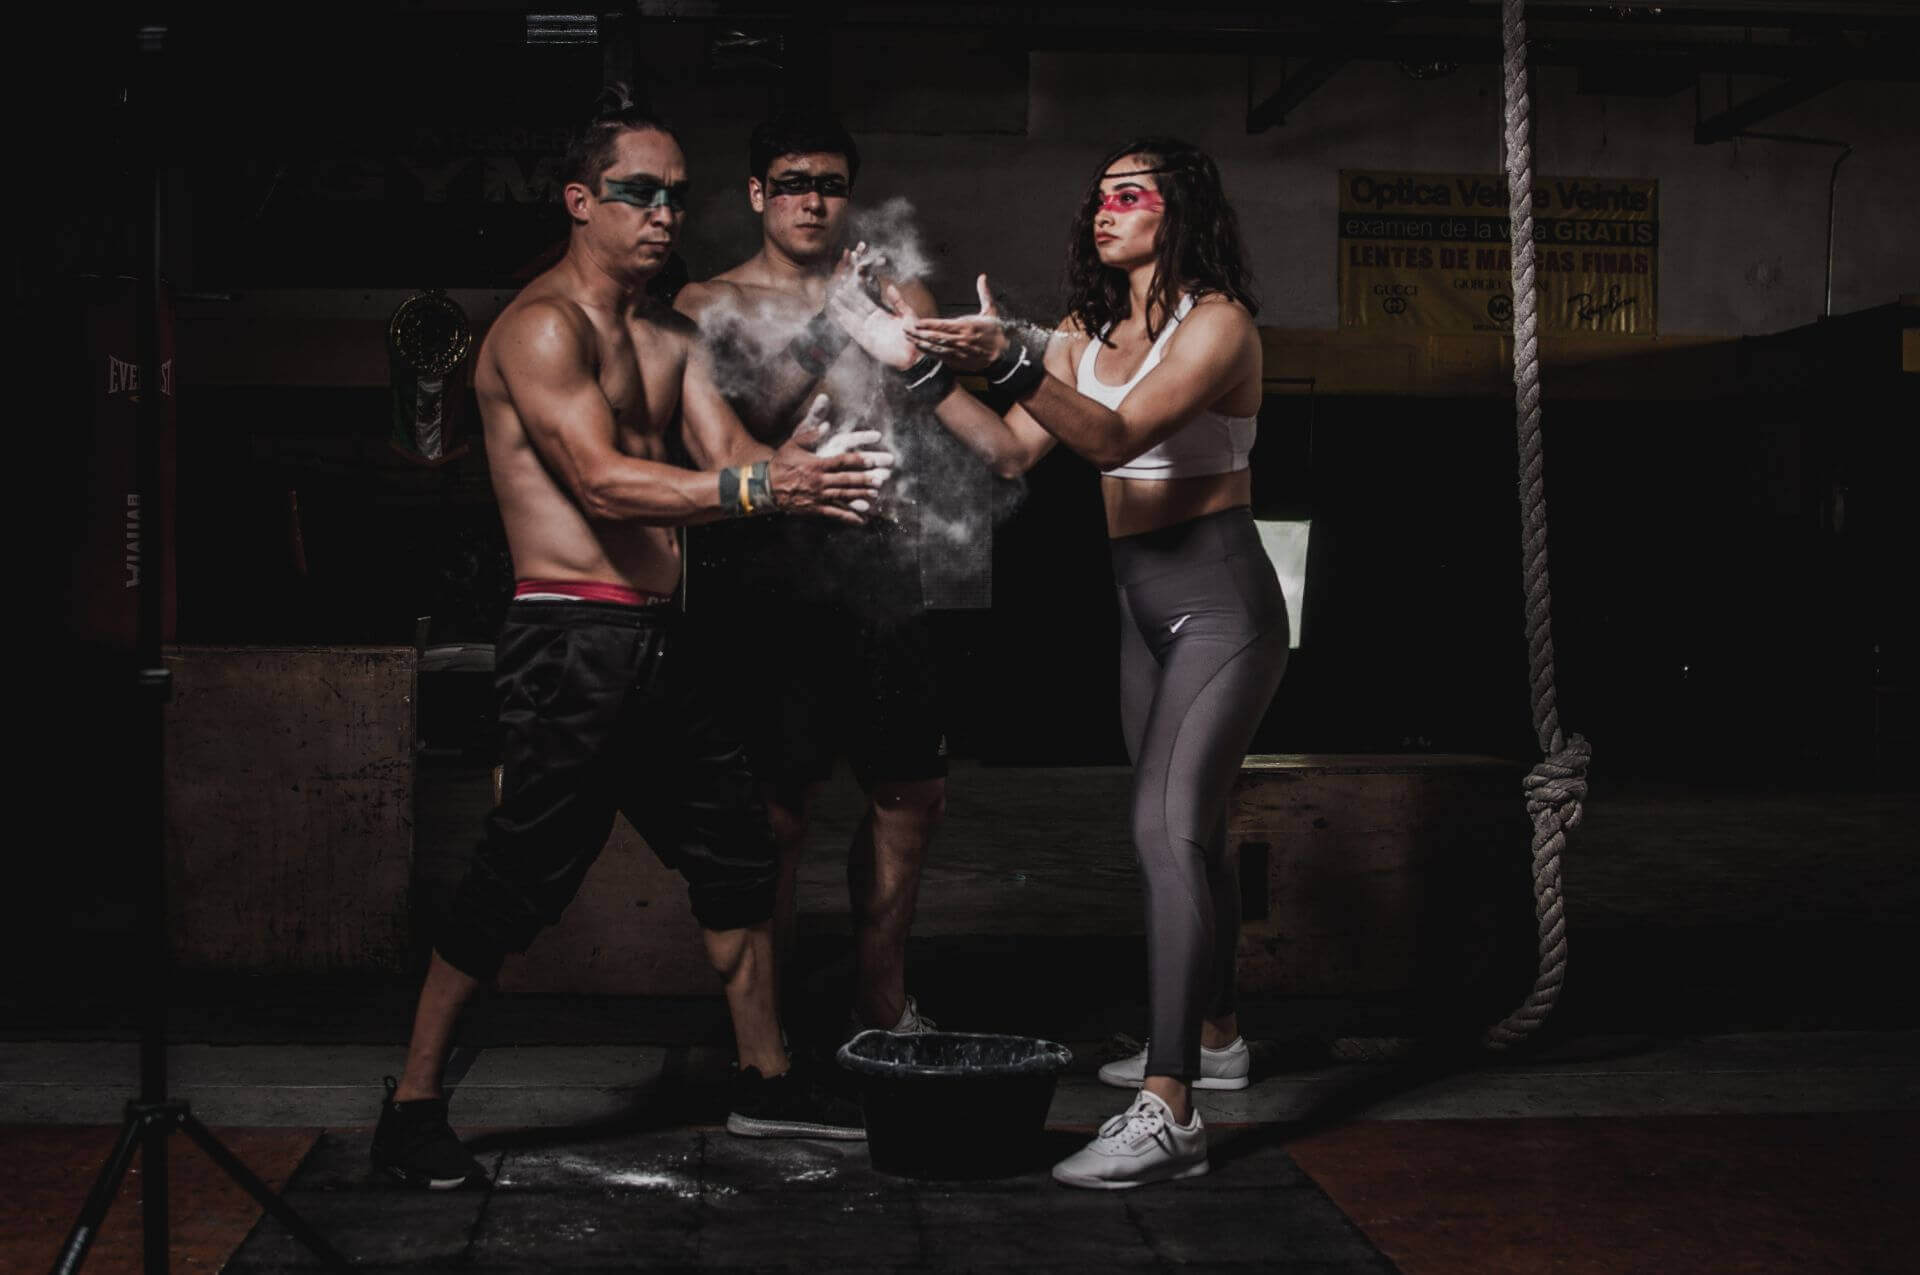 FISAF Fitness Leader and Personal Trainer